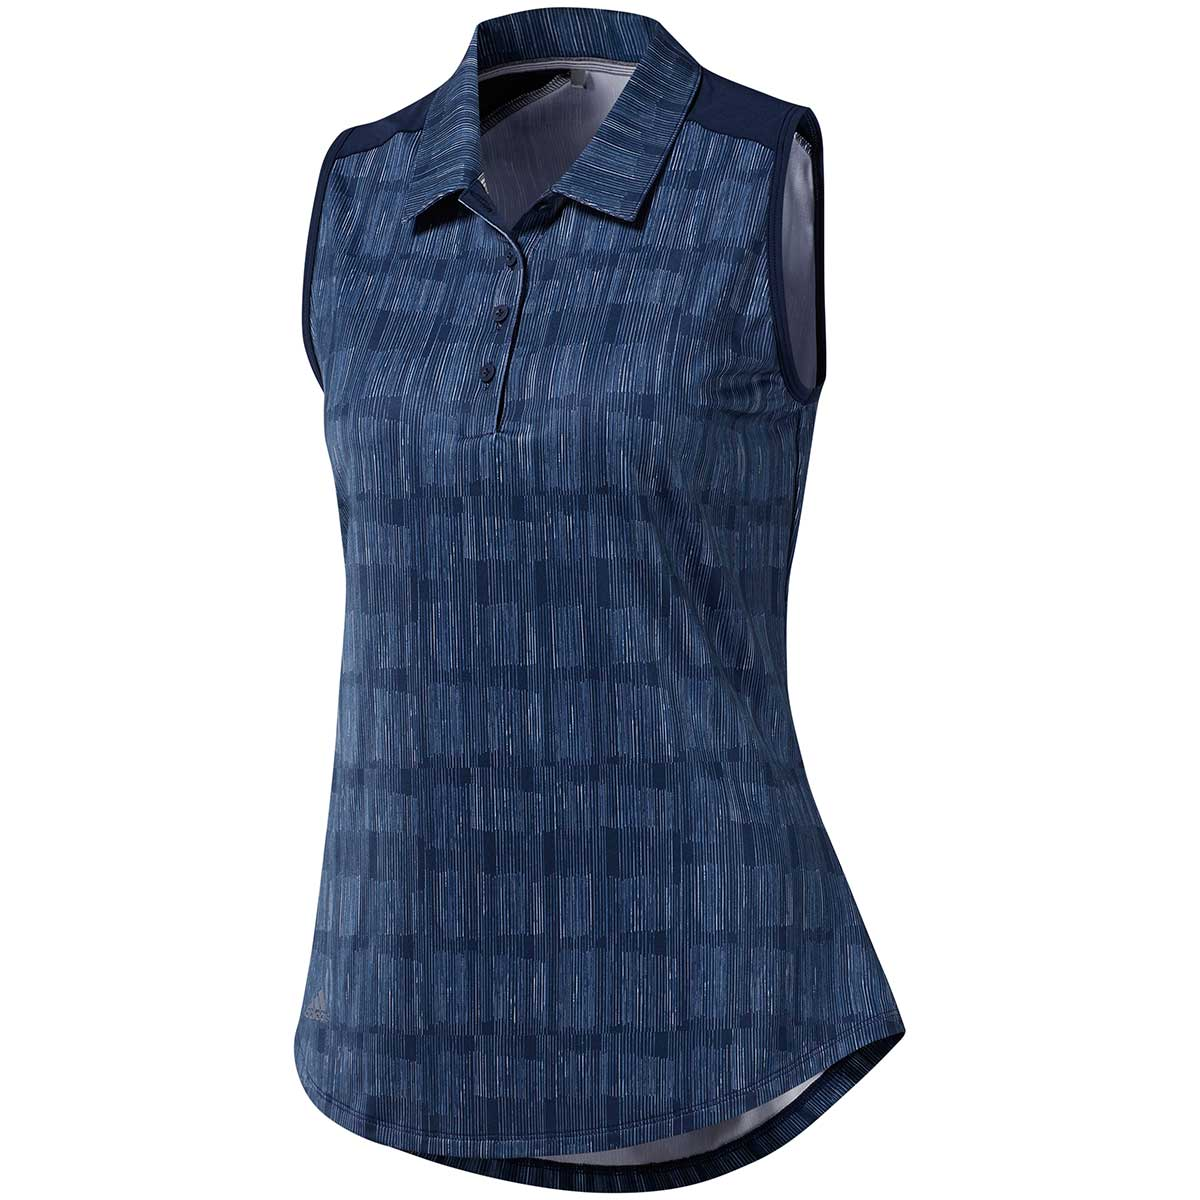 Adidas Women's Ultimate365 Sleeveless Polo Shirt - Night Indigo